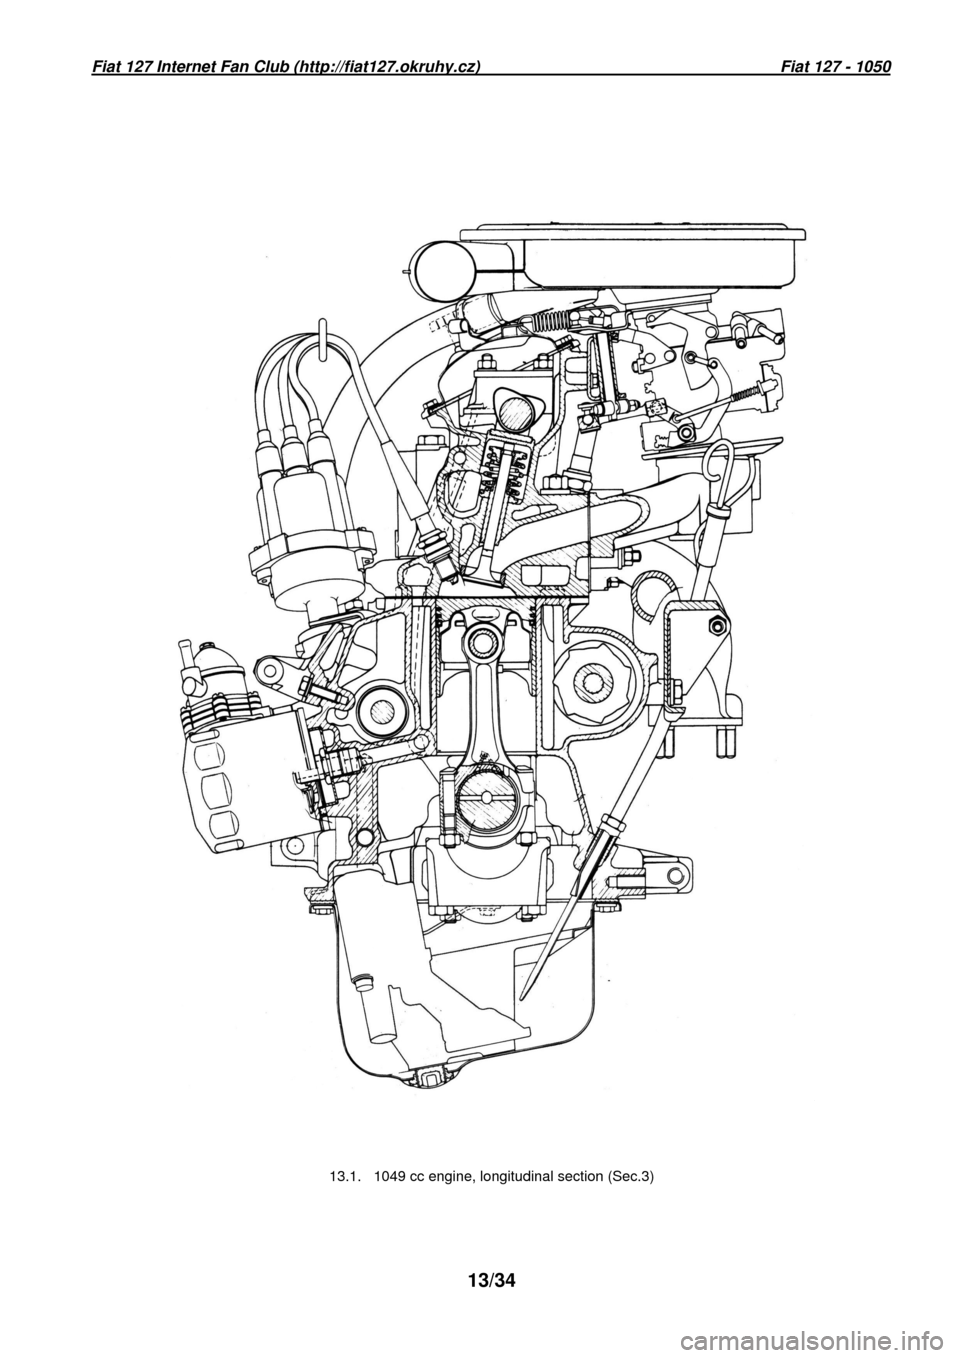 FIAT 127 1977 1.G Workshop Manual